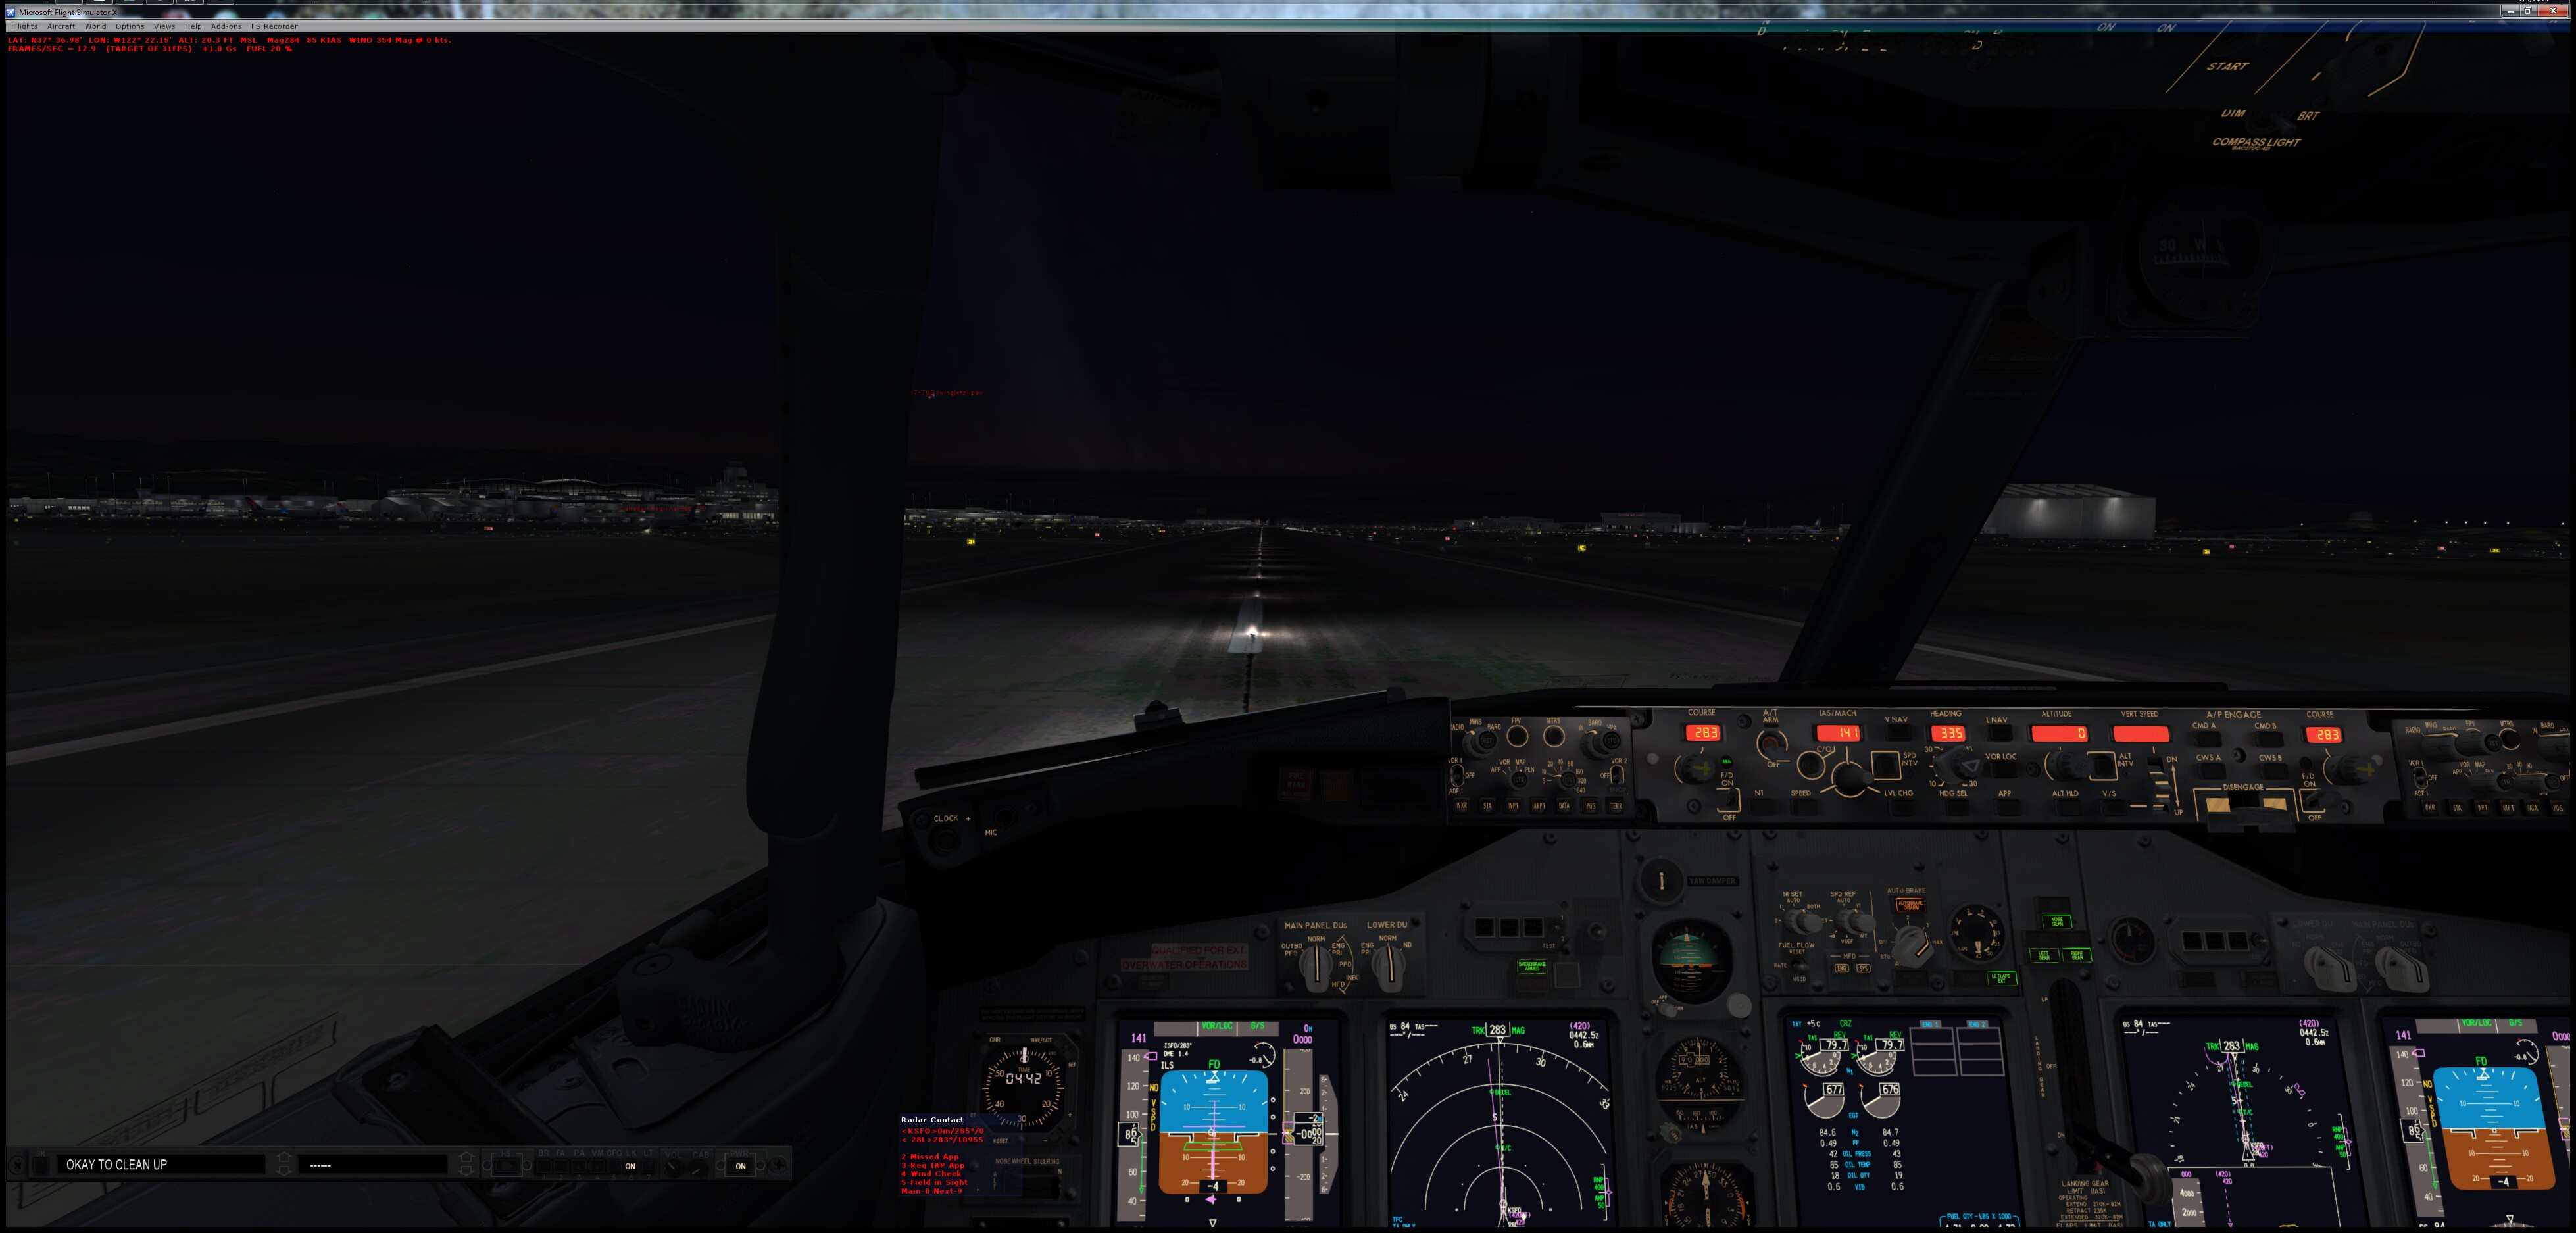 ScreenshotsKLAX-KSFO-21.jpg